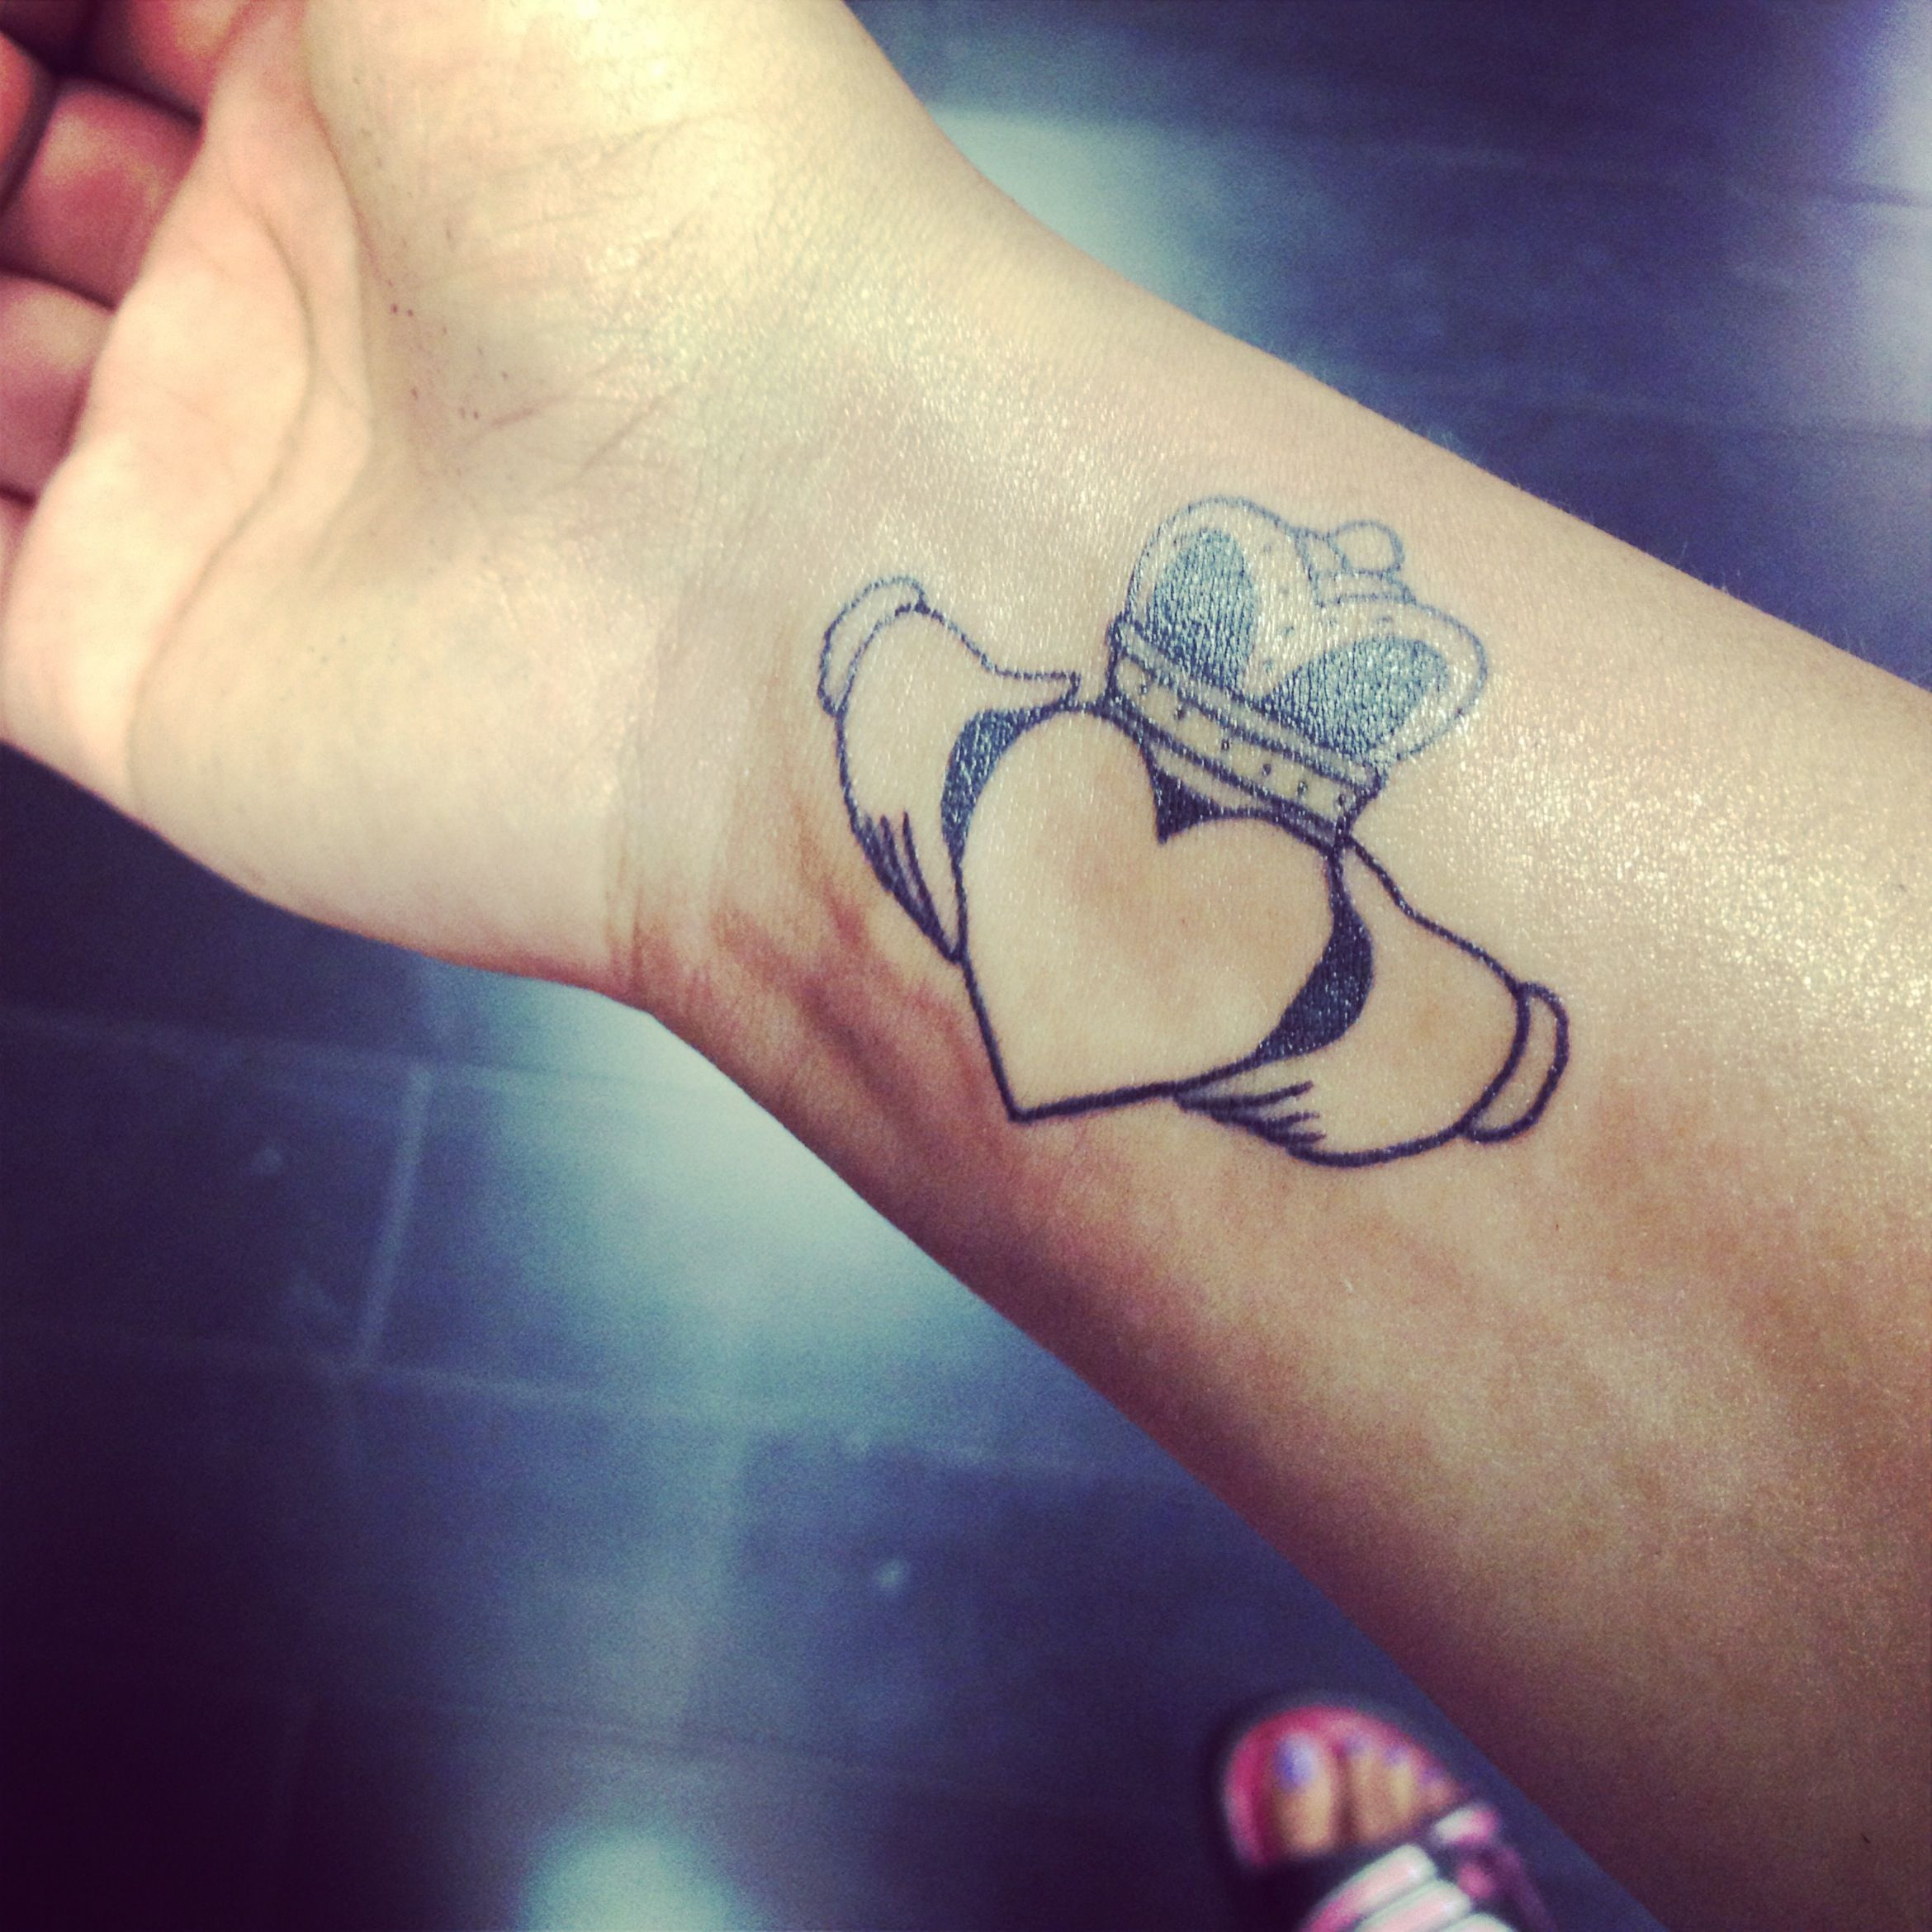 Tattoo Quotes Loyalty: My Me Tattoo. #claddagh Love Loyalty And Friendship